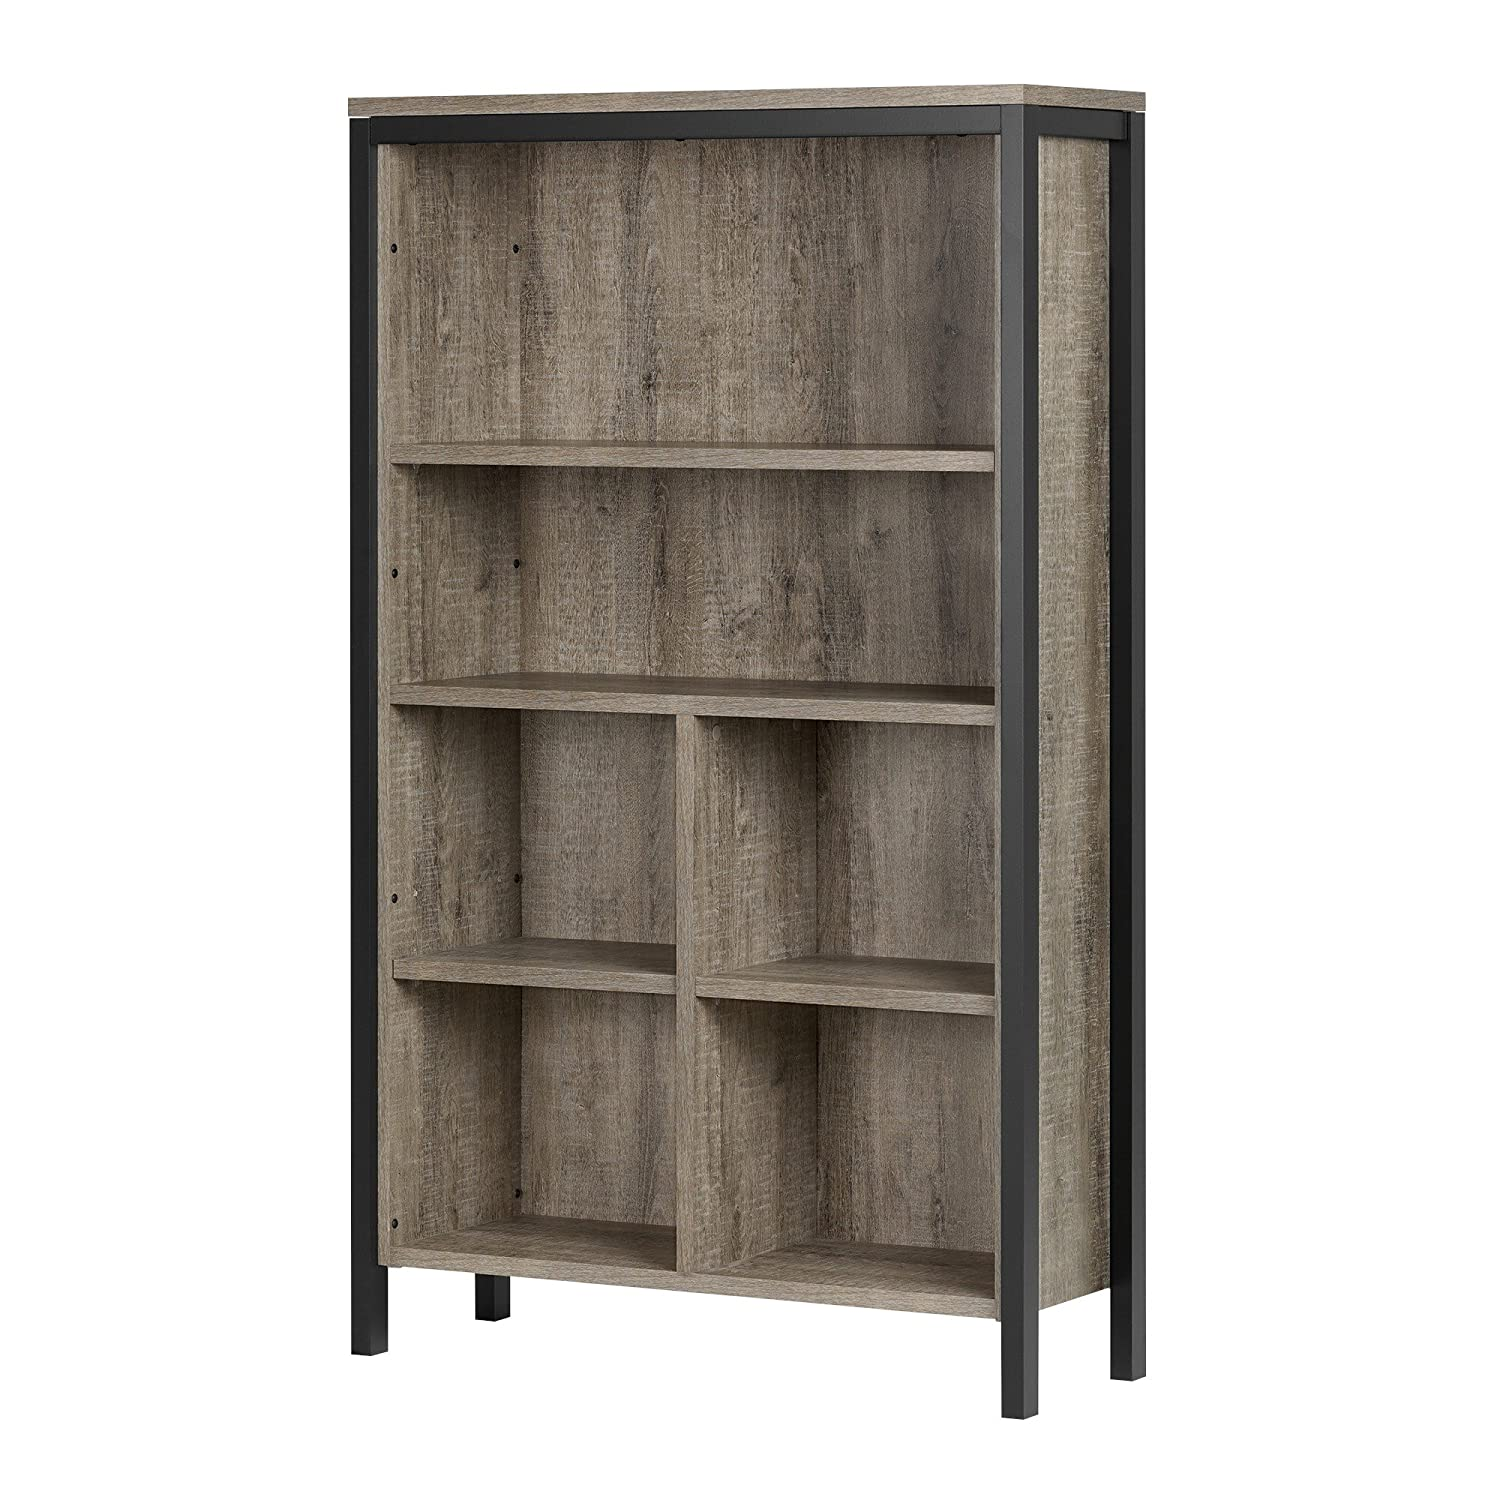 South Shore Furniture 10552 Munich 6-Shelf Bookcase with Cubes, Weathered Oak and Matte Black